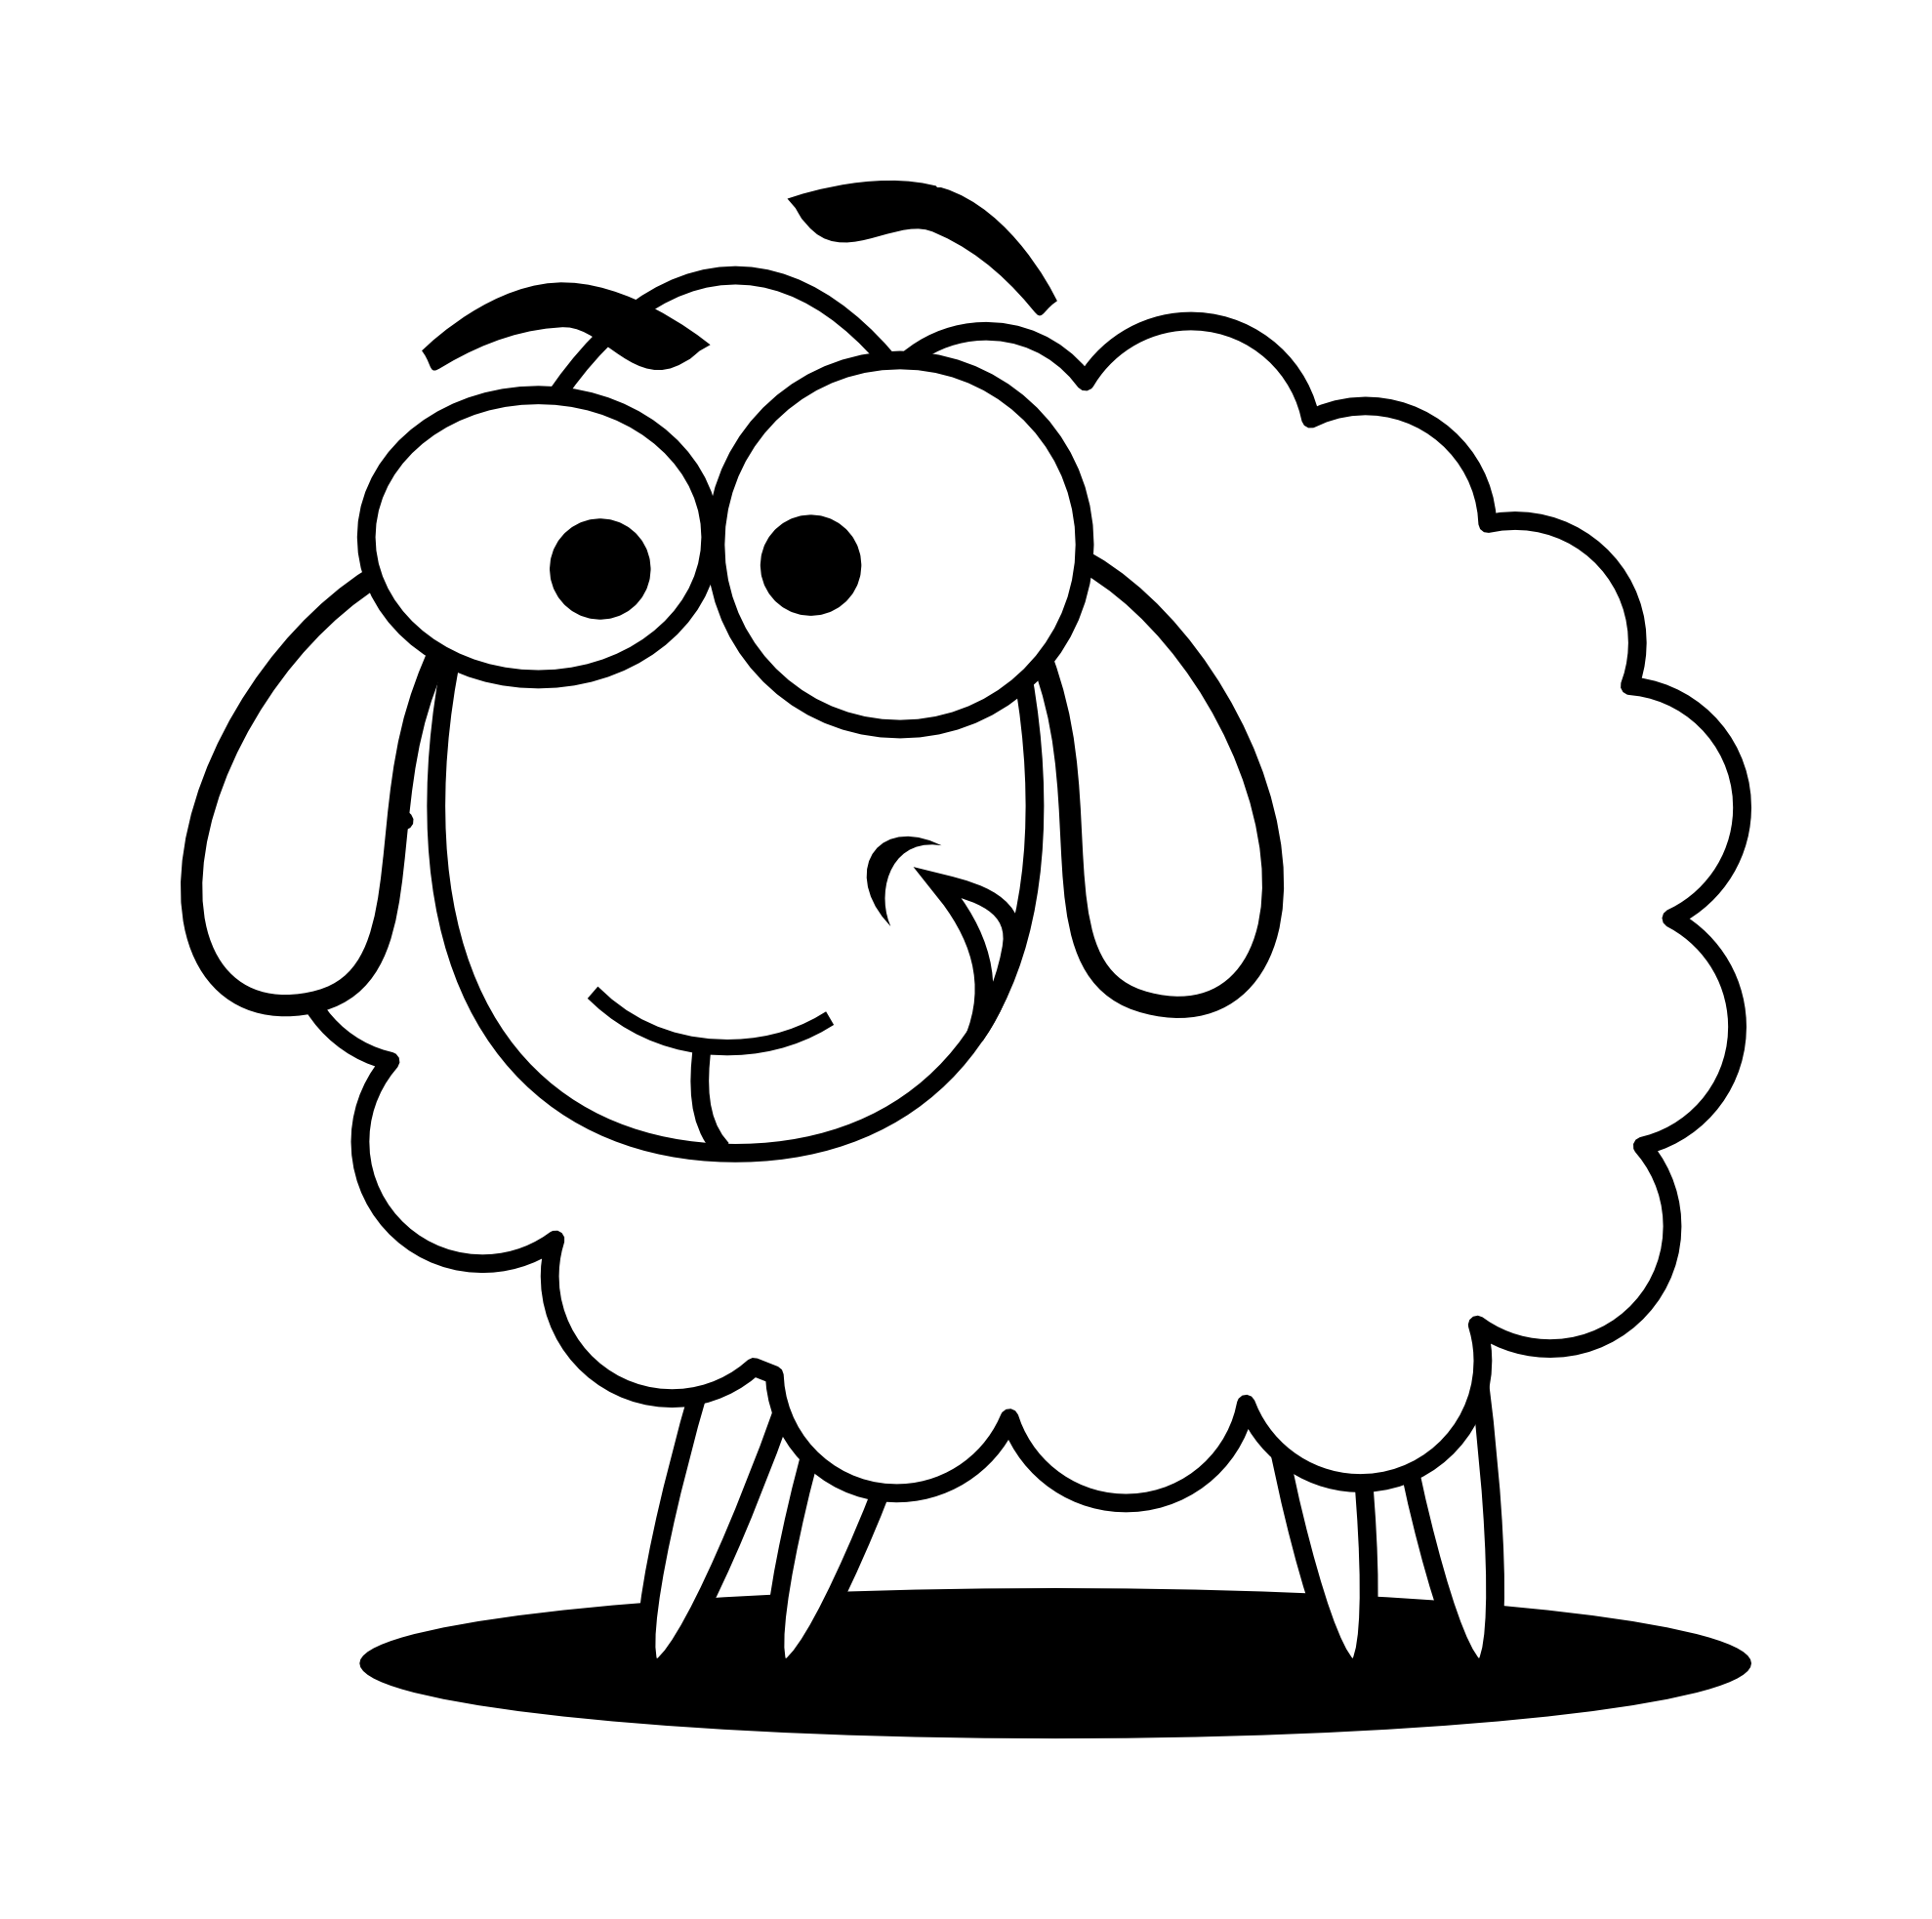 Ewe cartoon clipart black and white clip Free Sheep Image, Download Free Clip Art, Free Clip Art on Clipart ... clip